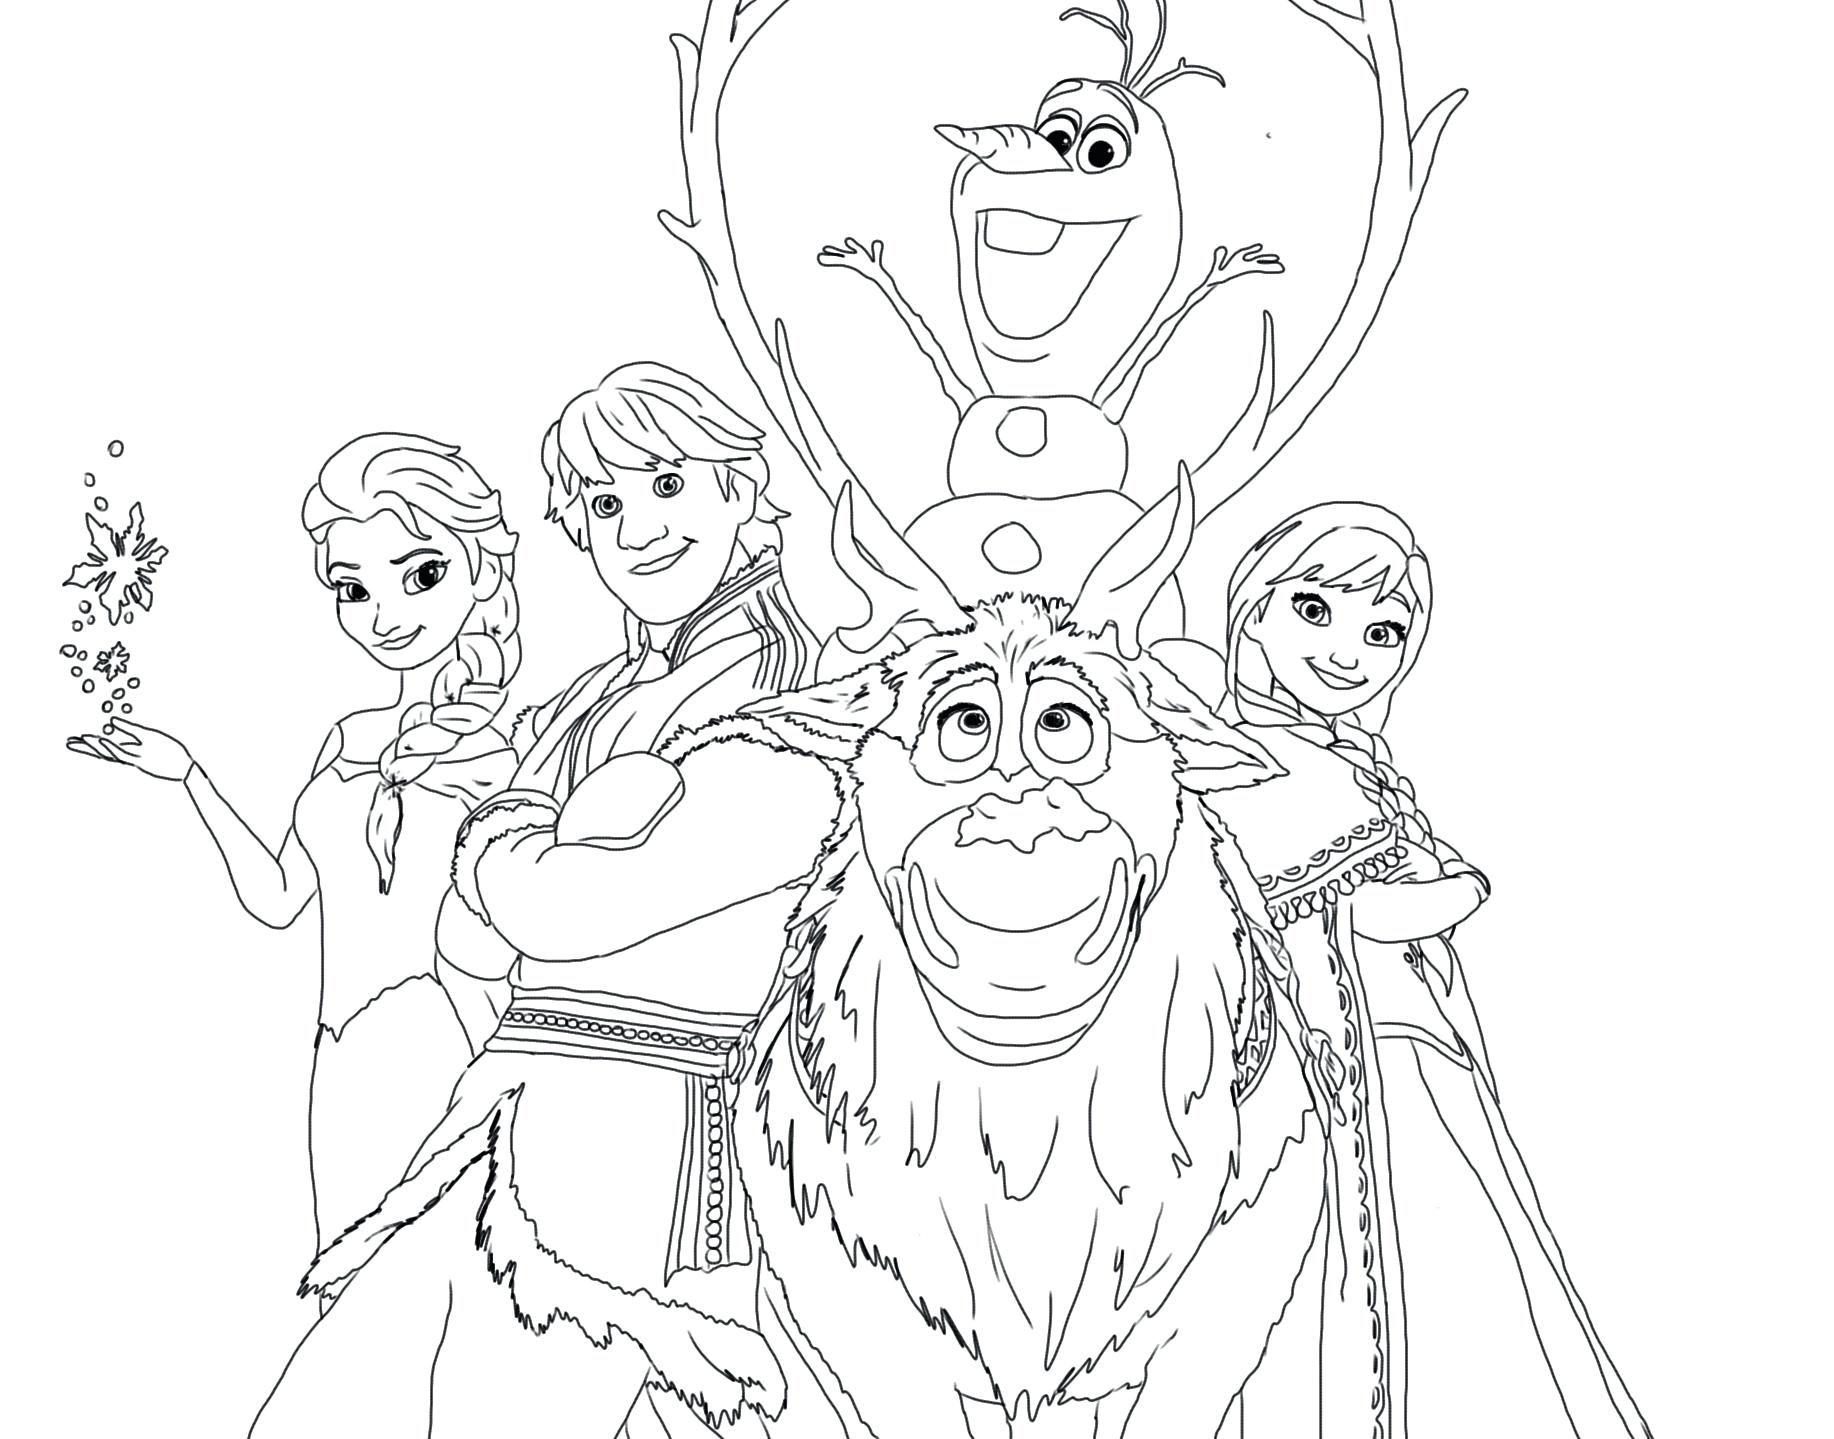 Free Printable Disney Frozen Christmas Coloring Pages With New Princess Gallery